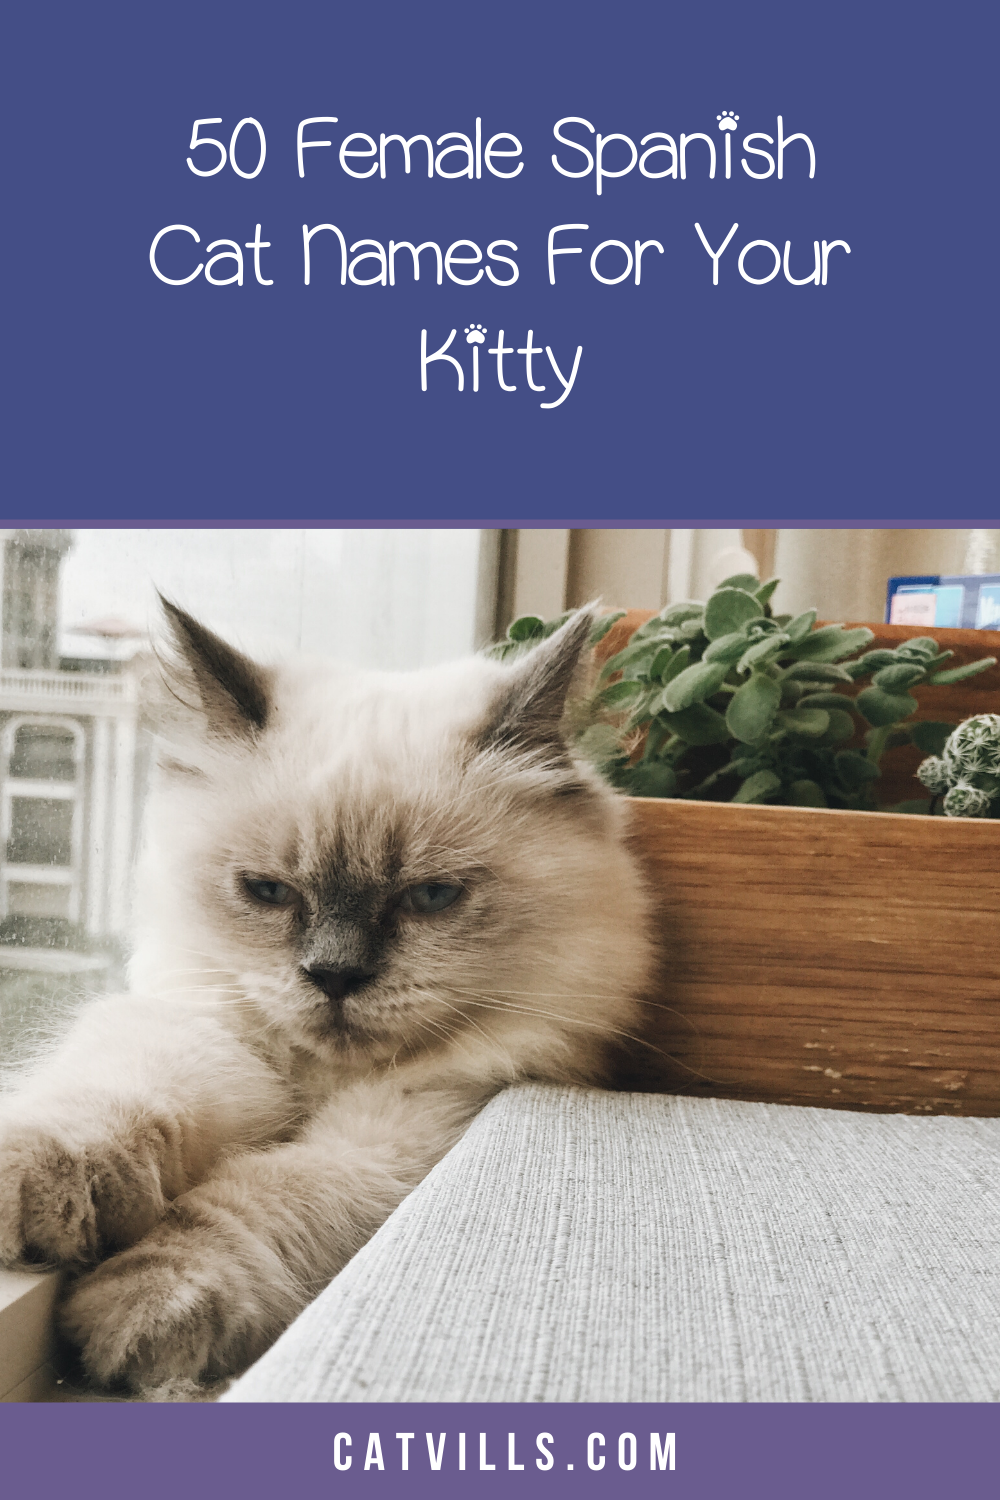 100 Spectacular Spanish Cat Names for Male & Female